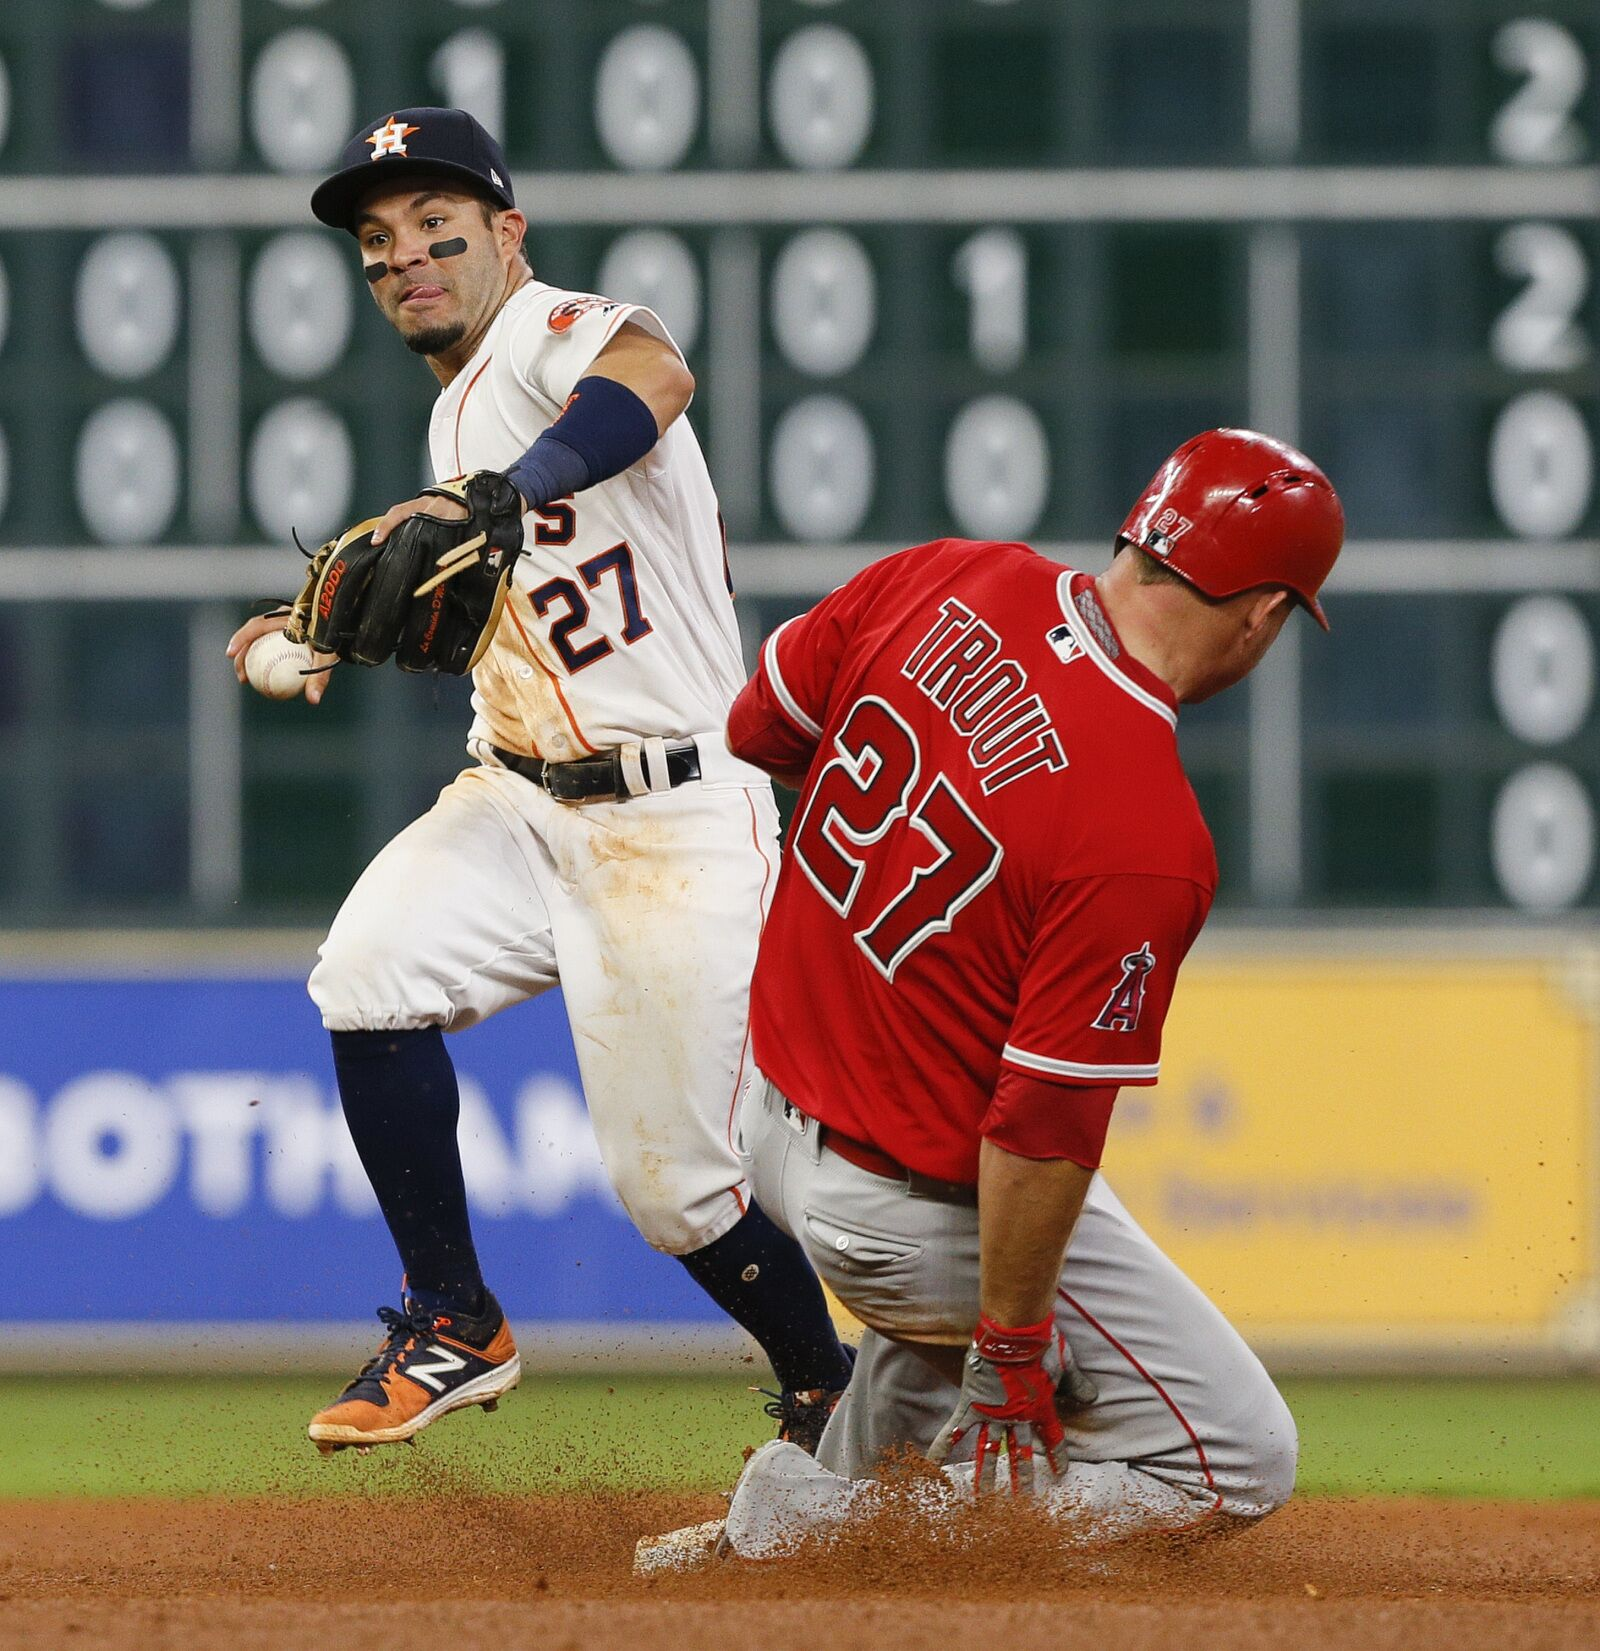 670024072-los-angeles-angels-of-anaheim-v-houston-astros.jpg